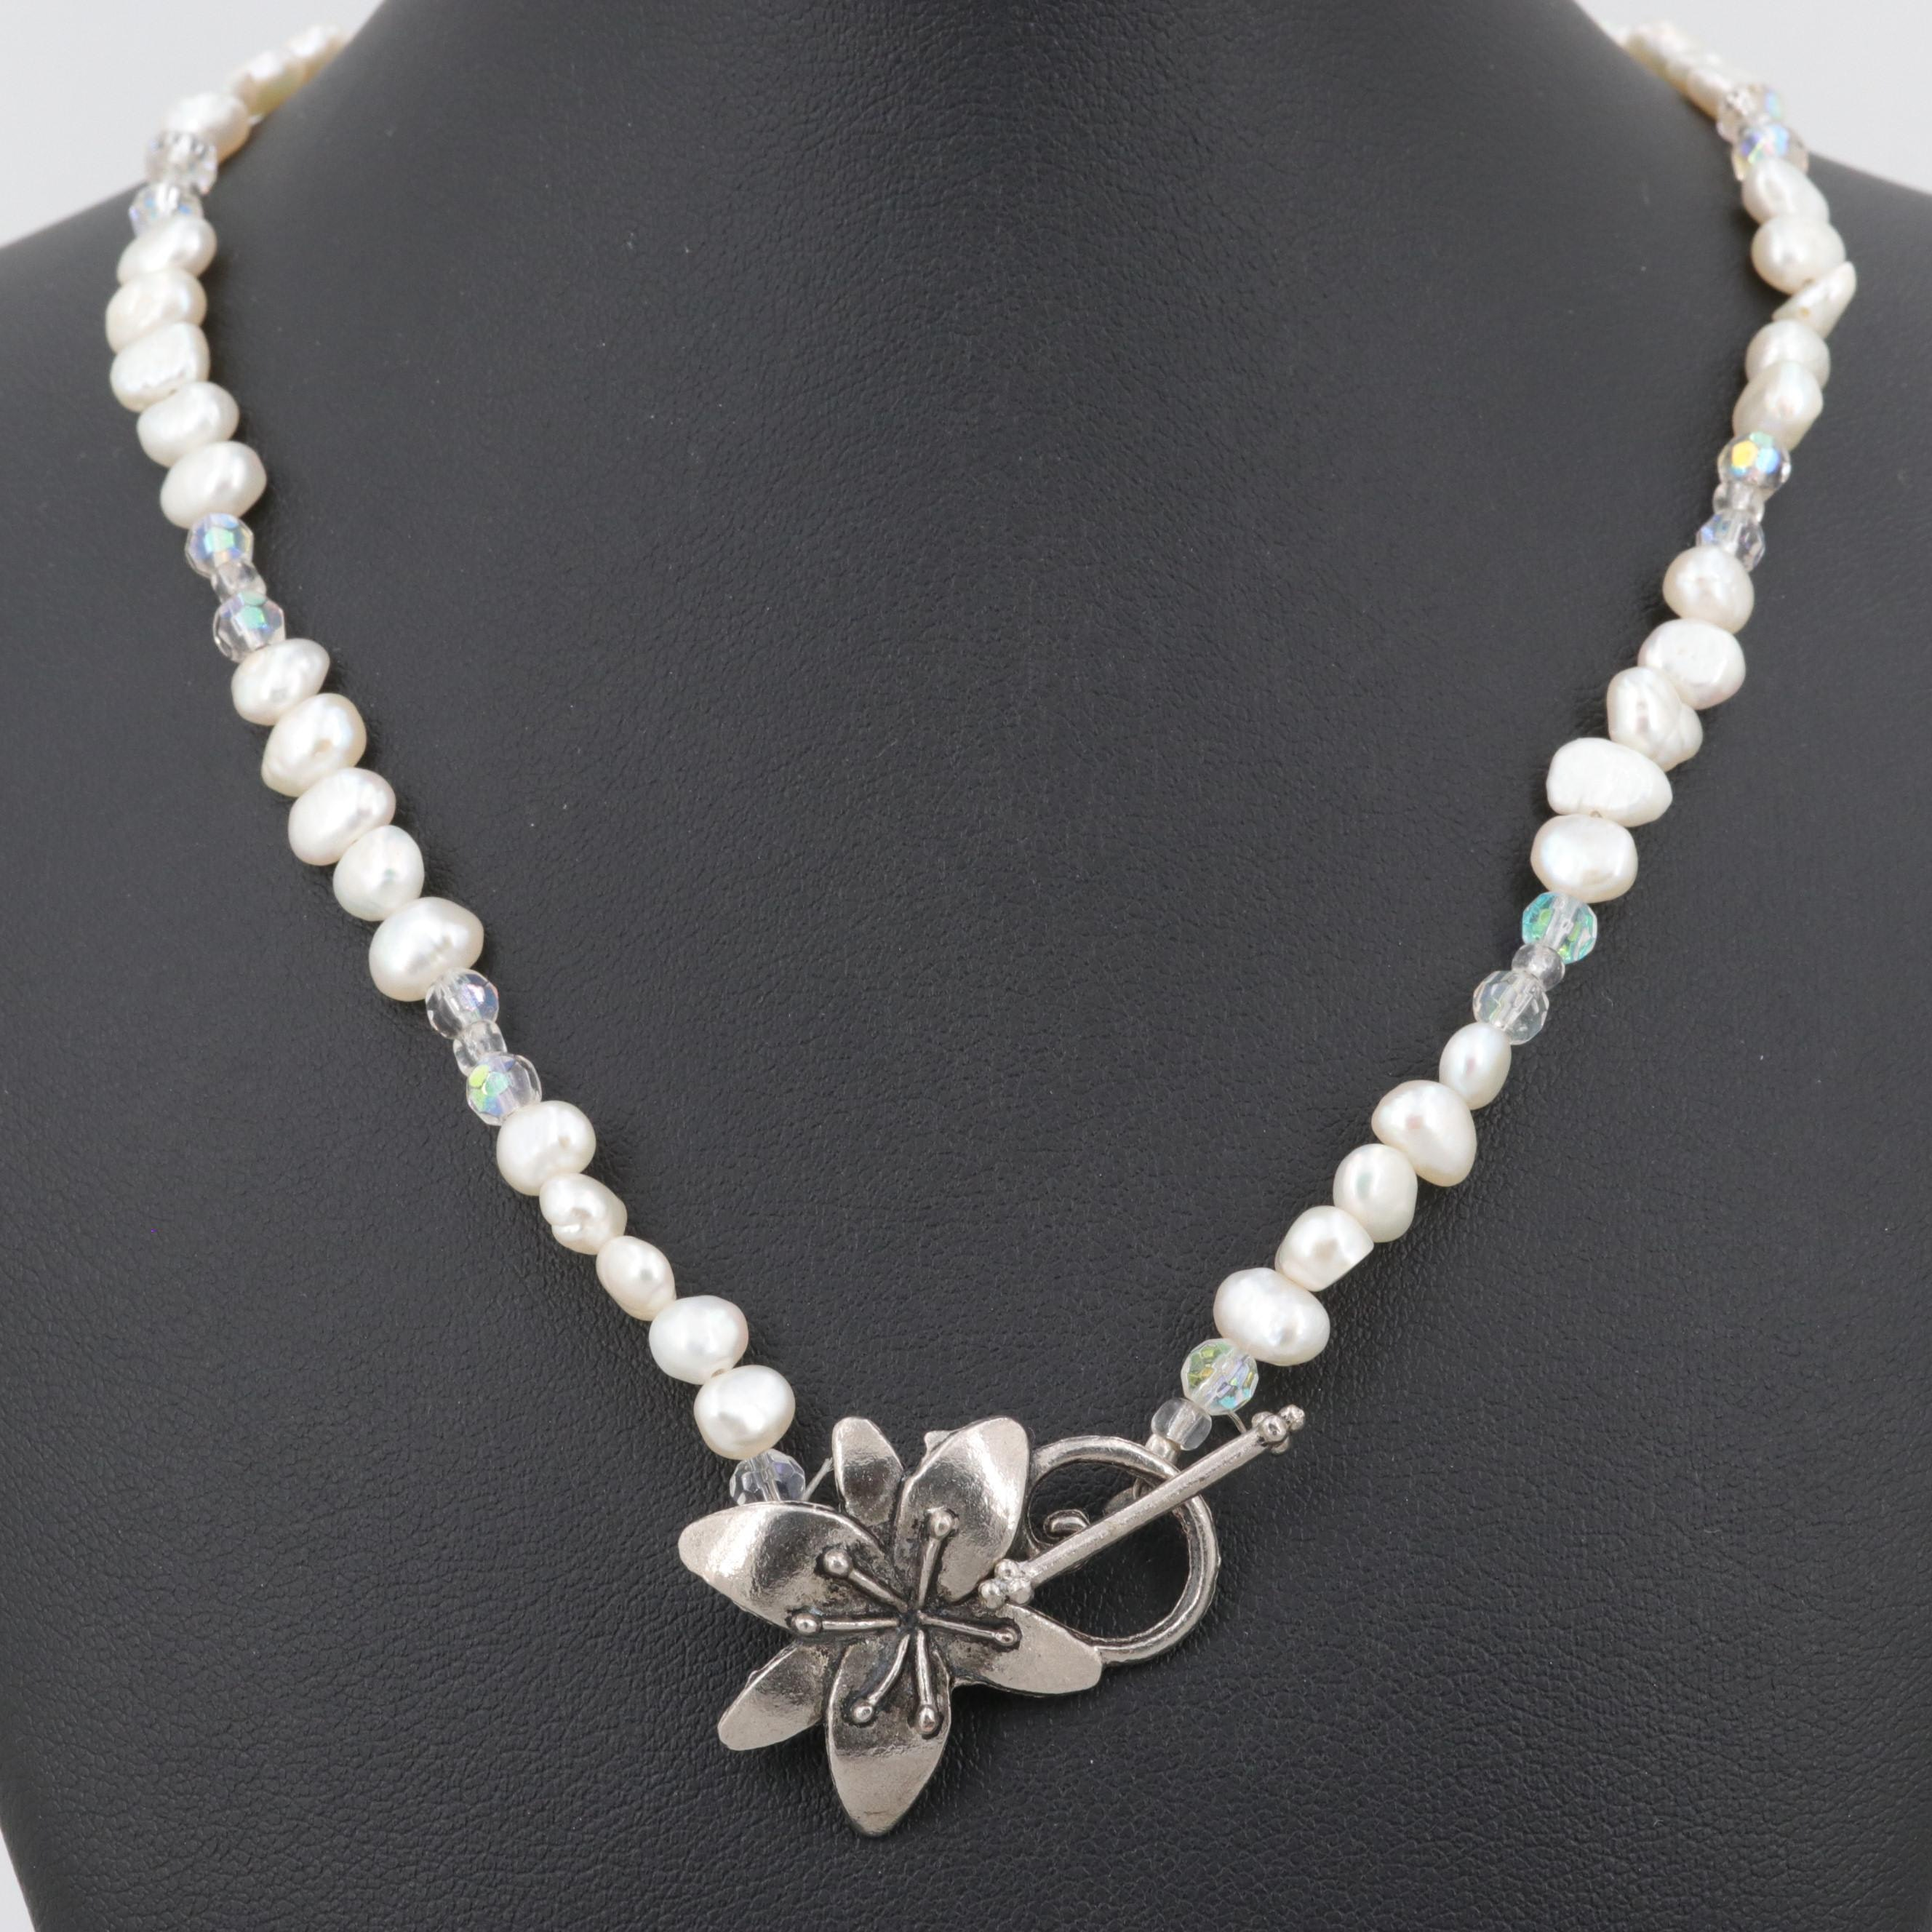 Silver Tone Cultured Pearl and Glass Necklace